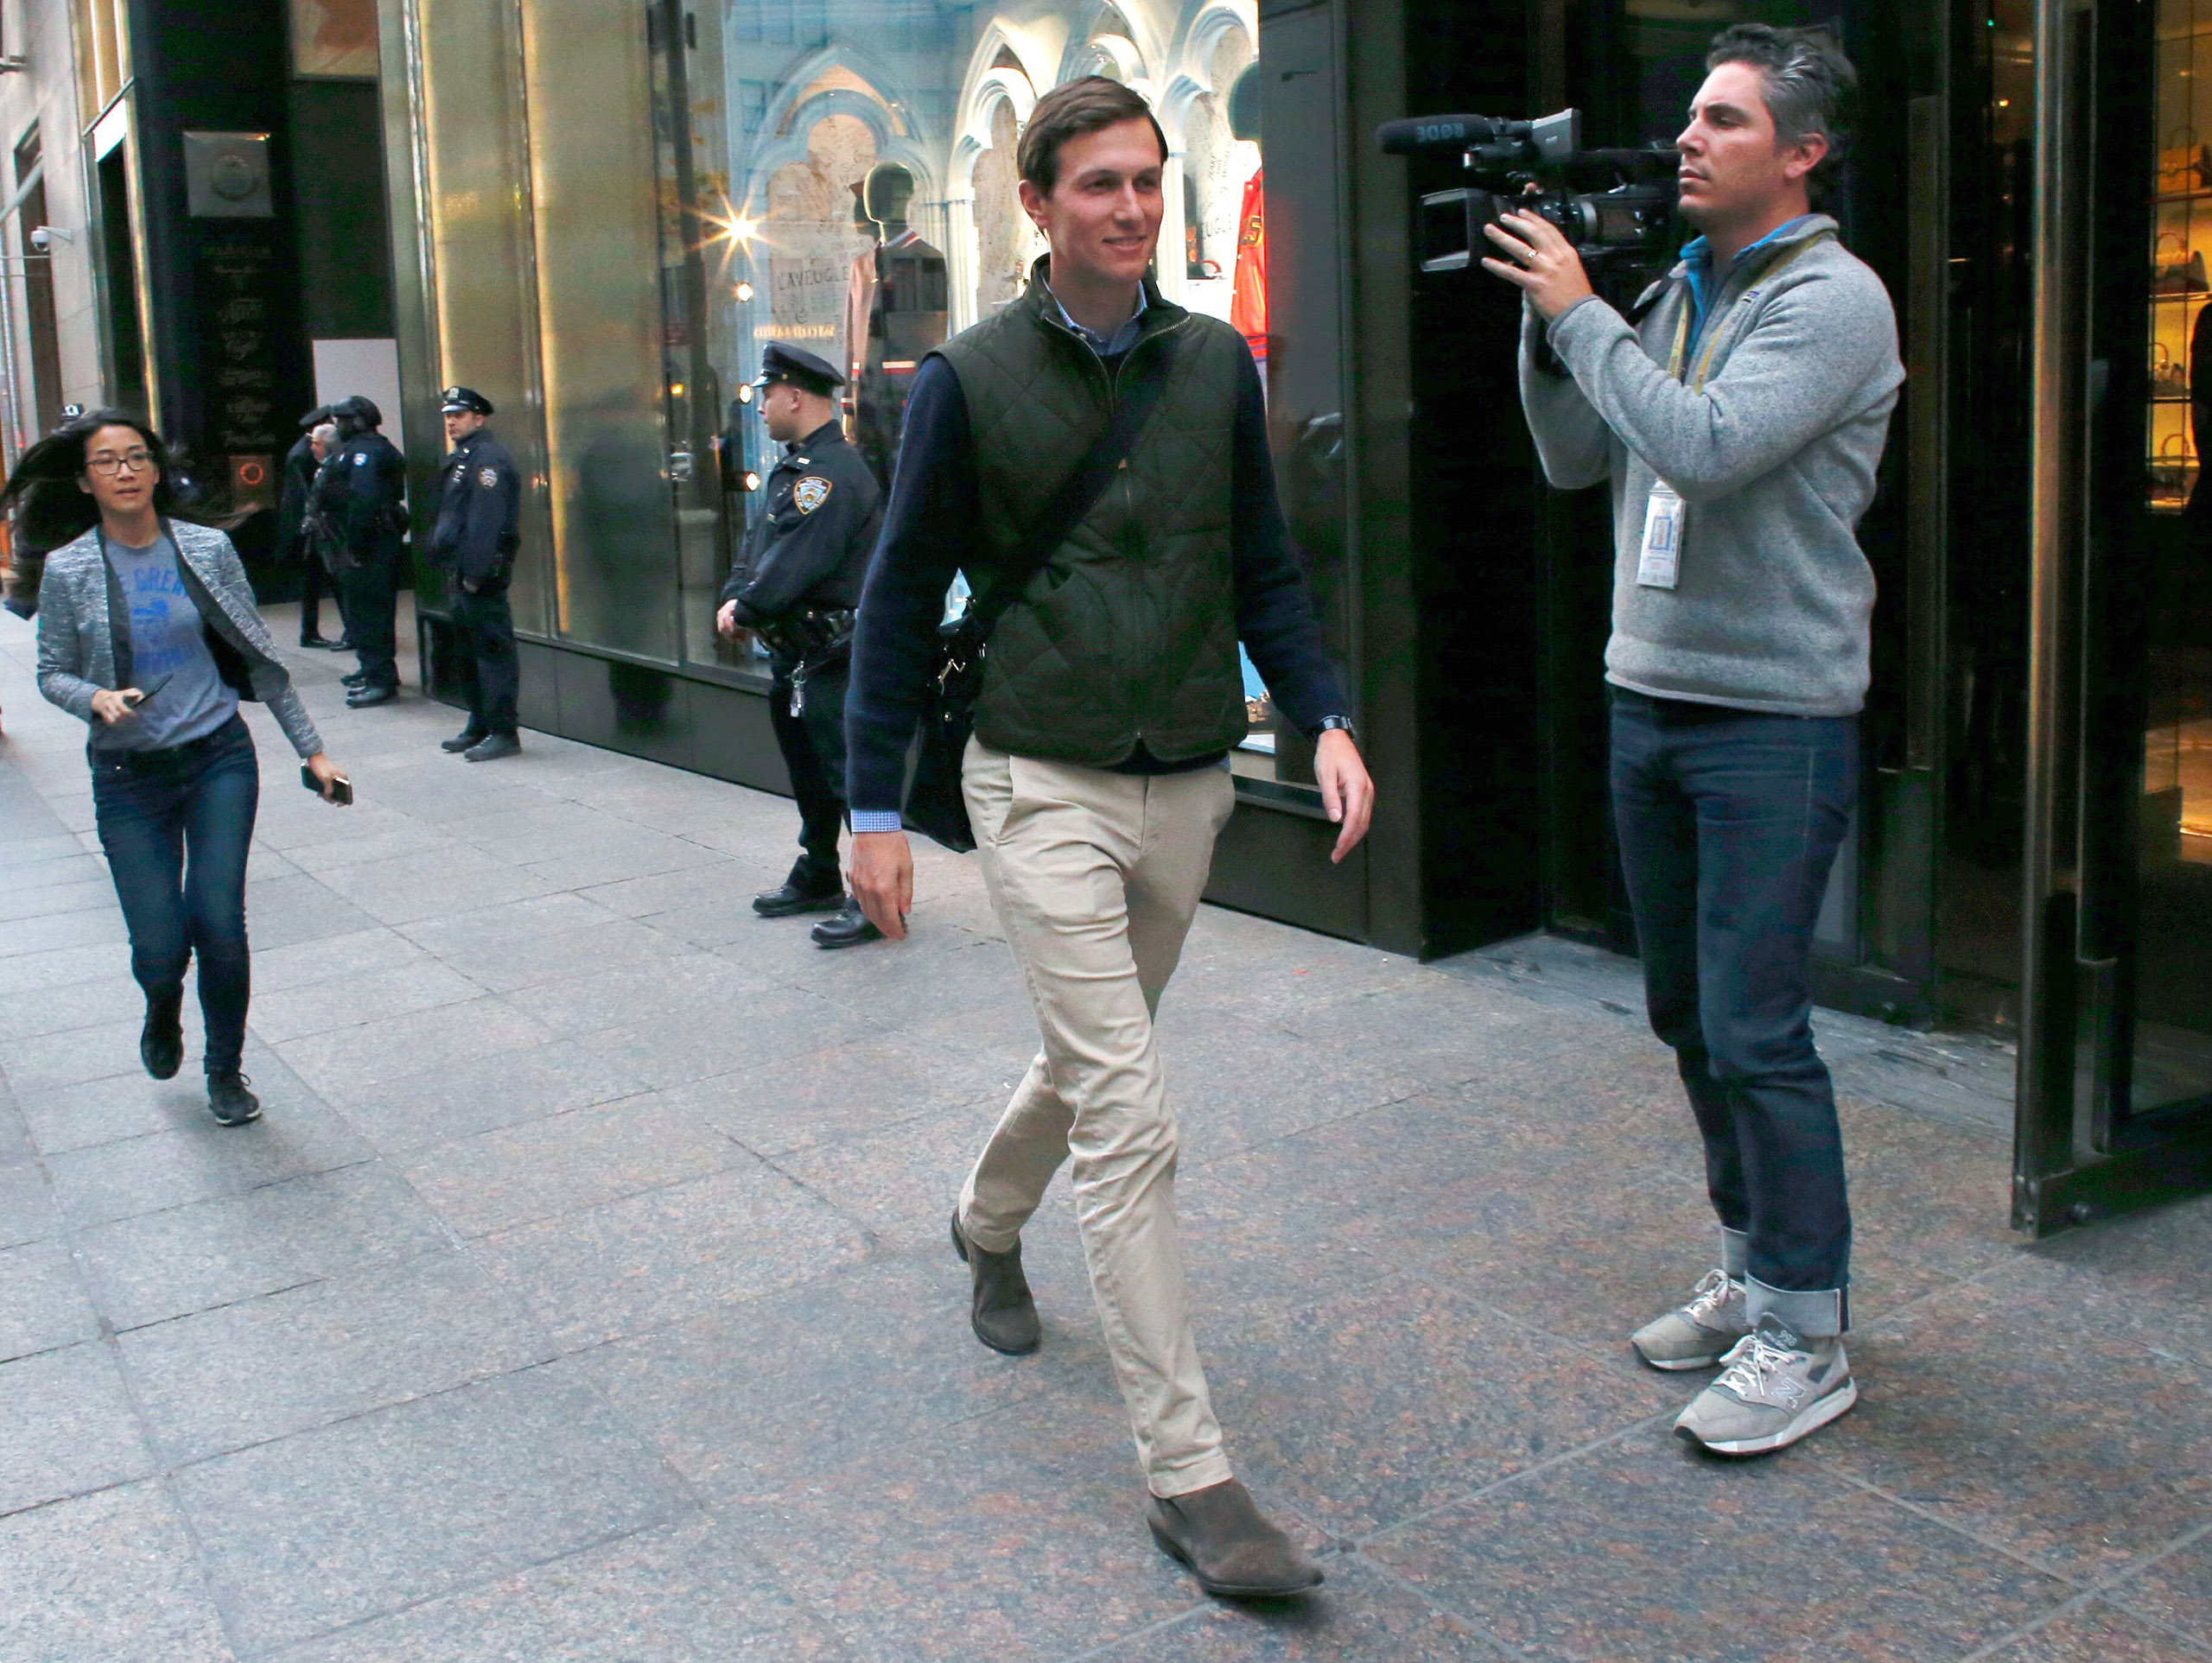 Jared Kushner, son-in-law of US President-elect Donald Trump, leaves from the Trump Tower in New York on Nov. 14, 2016.